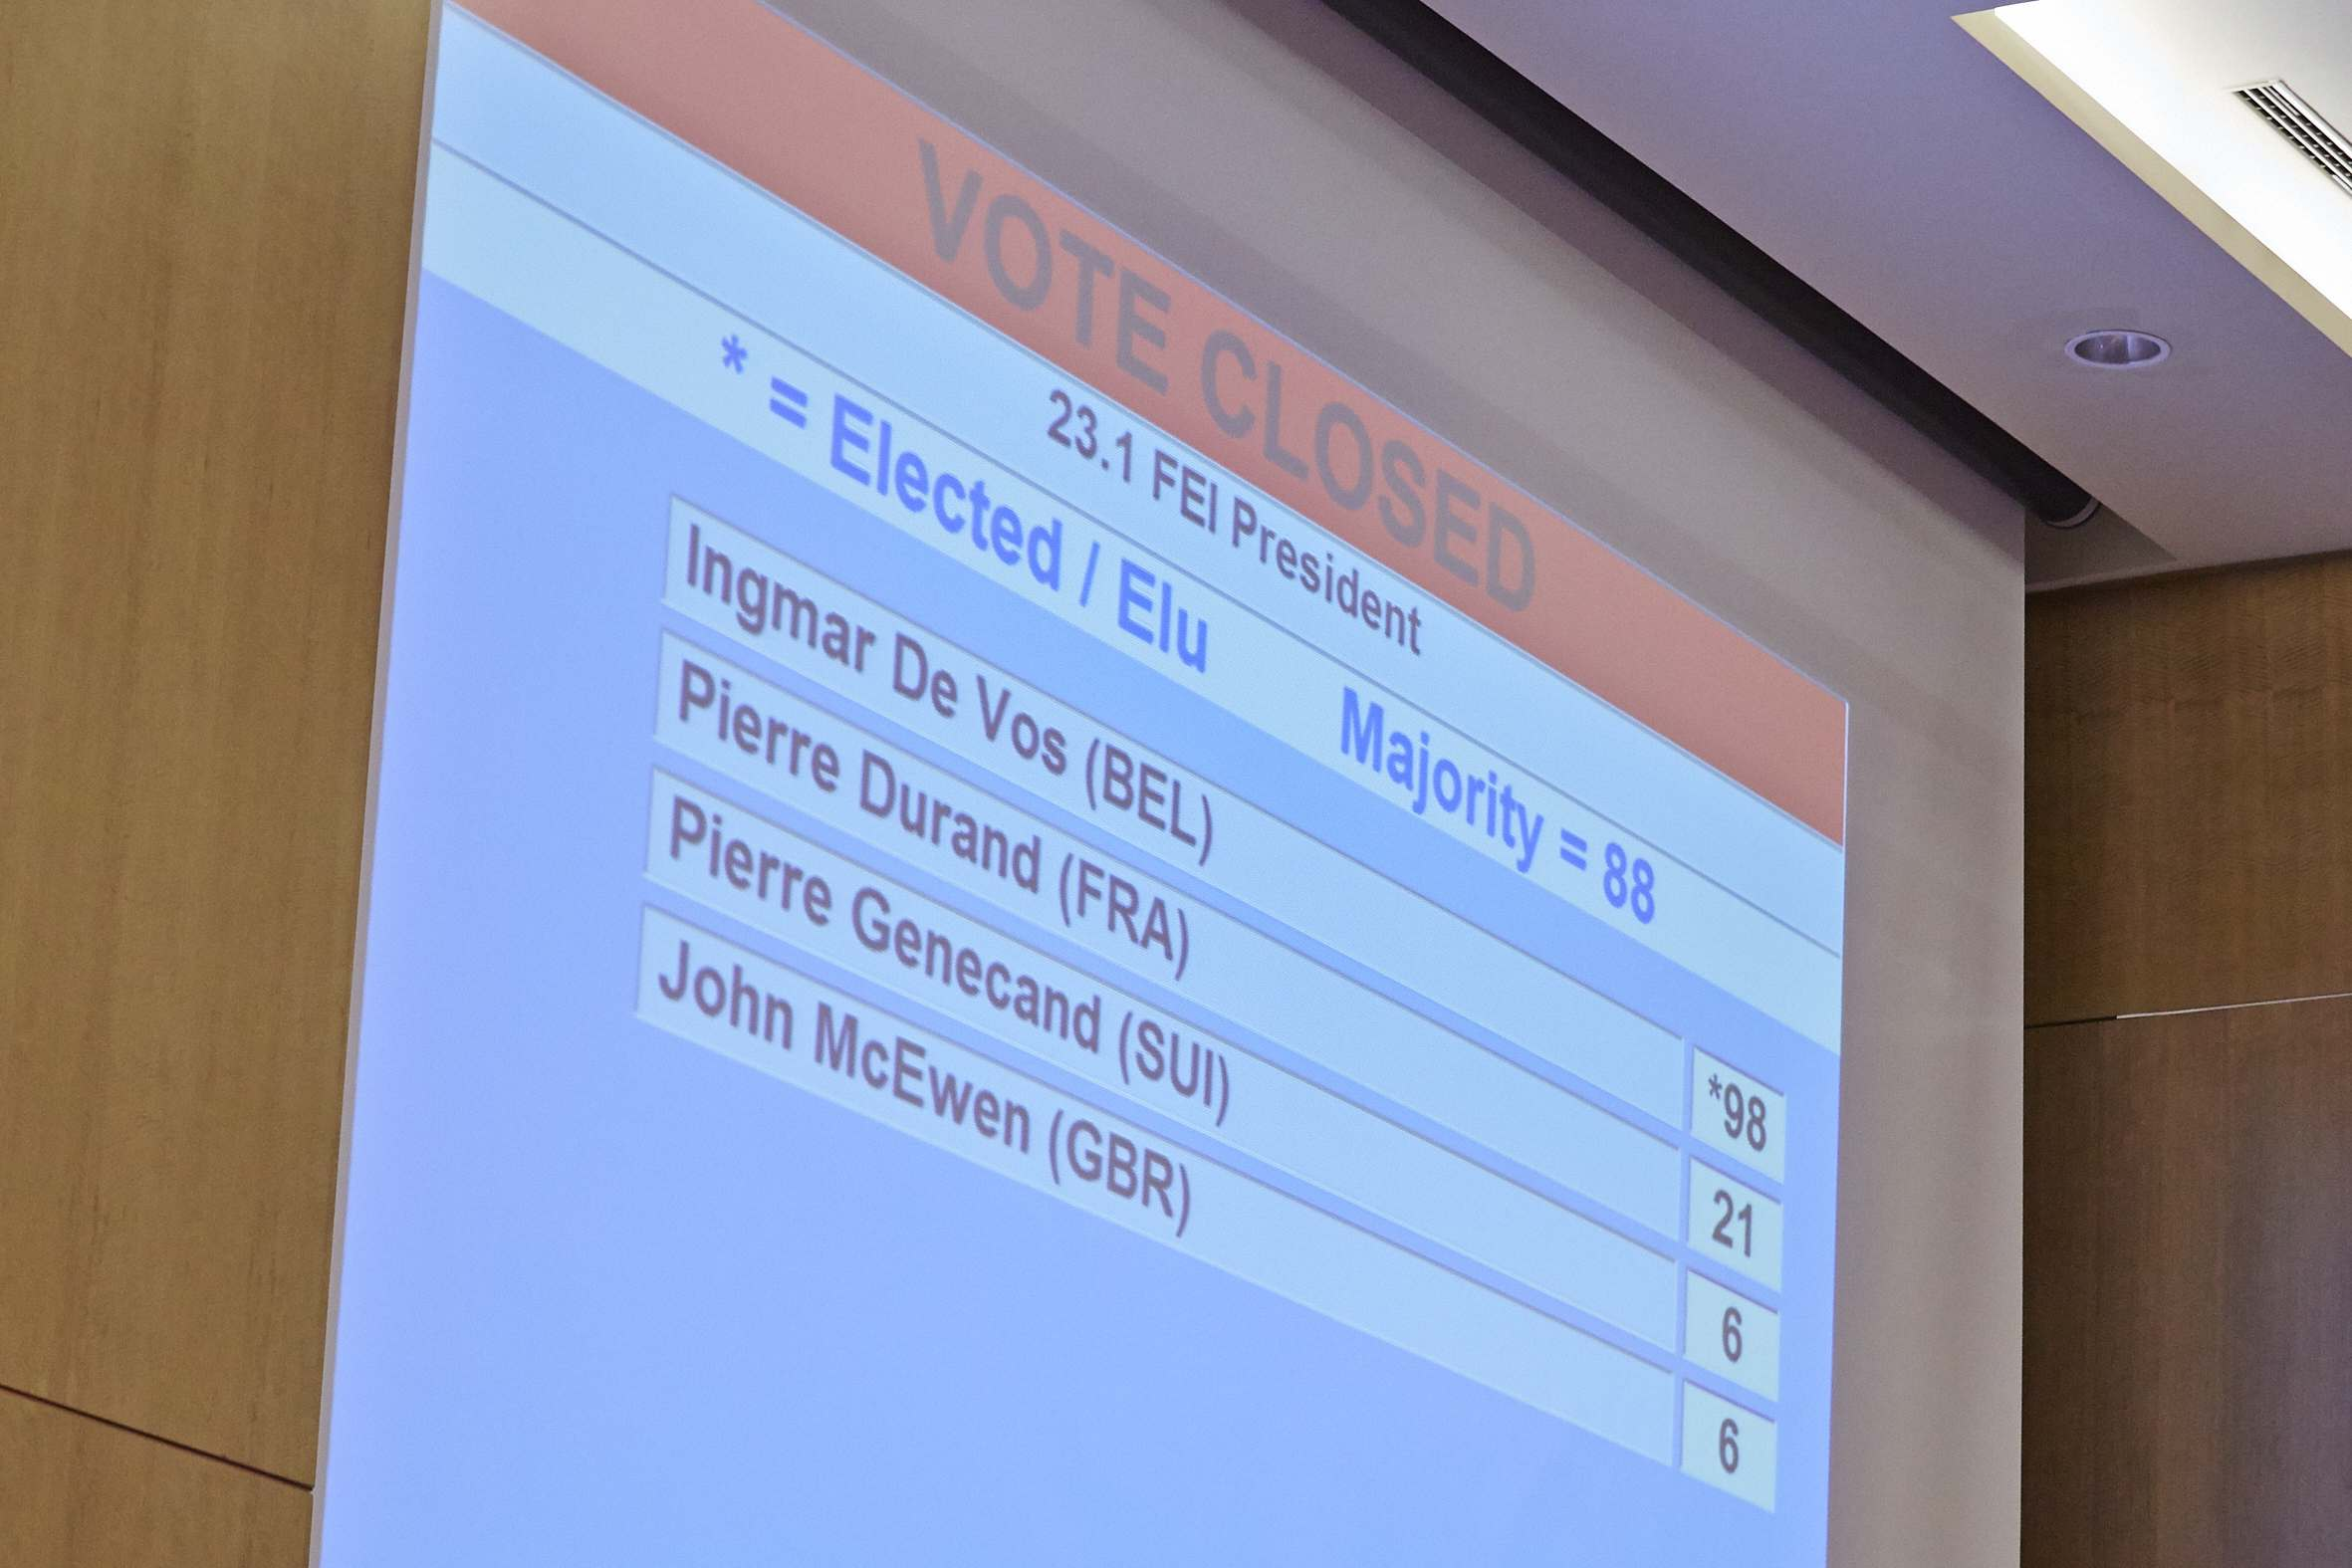 Ingmar De Vos garnered 98 votes out of a possible 131 at the FEI General Assembly ©FEI